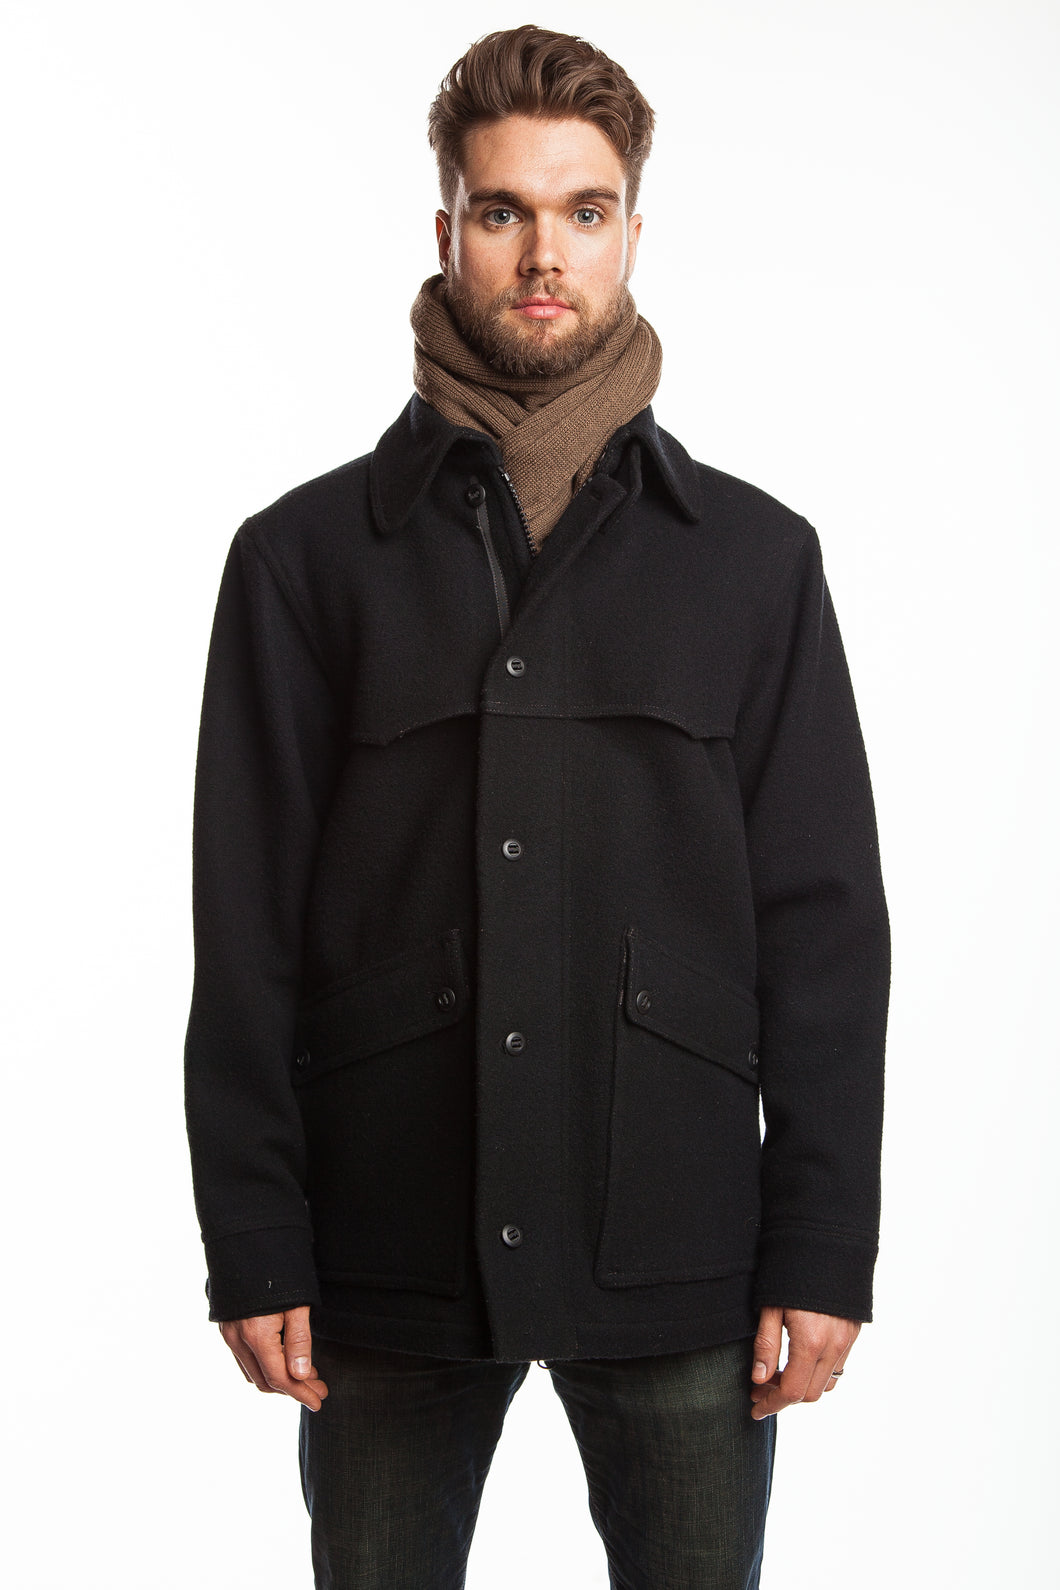 WeatherWool Pure Merino Wool All-Around Jacket in Solid Black Color